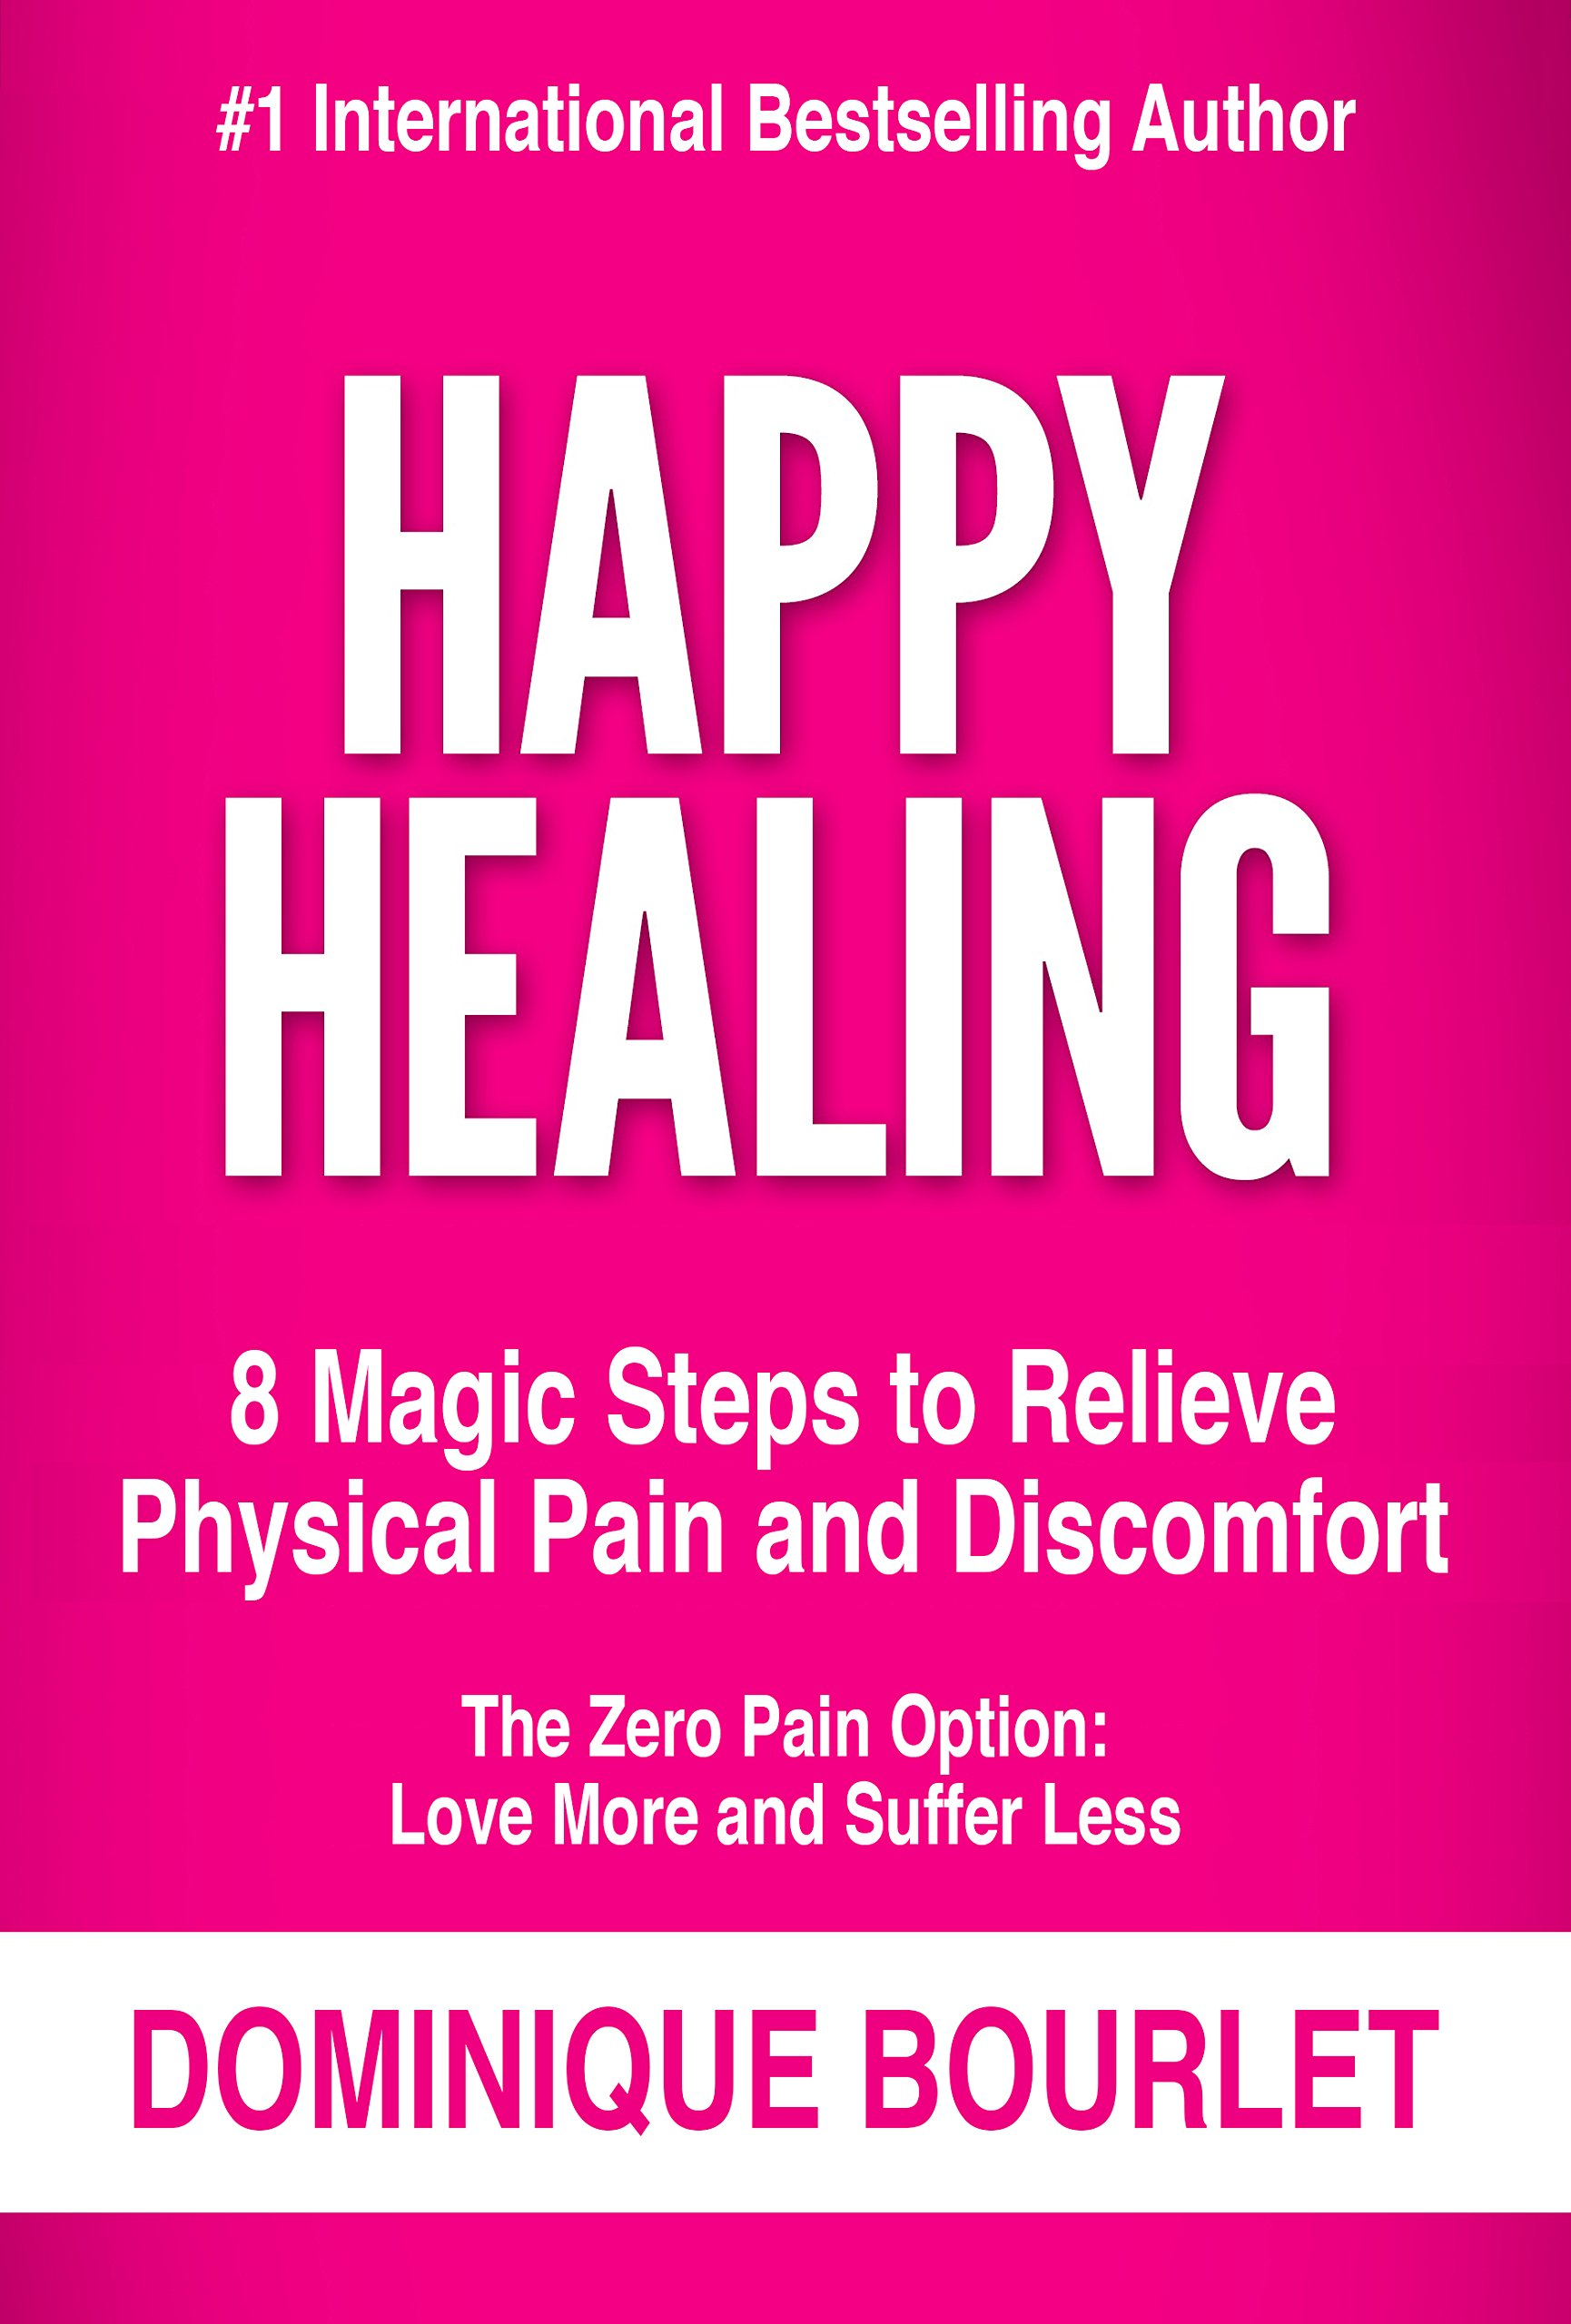 Image OfHAPPY HEALING: 8 MAGIC STEPS TO RELIEVE PHYSICAL PAIN AND DISCOMFORT (English Edition)